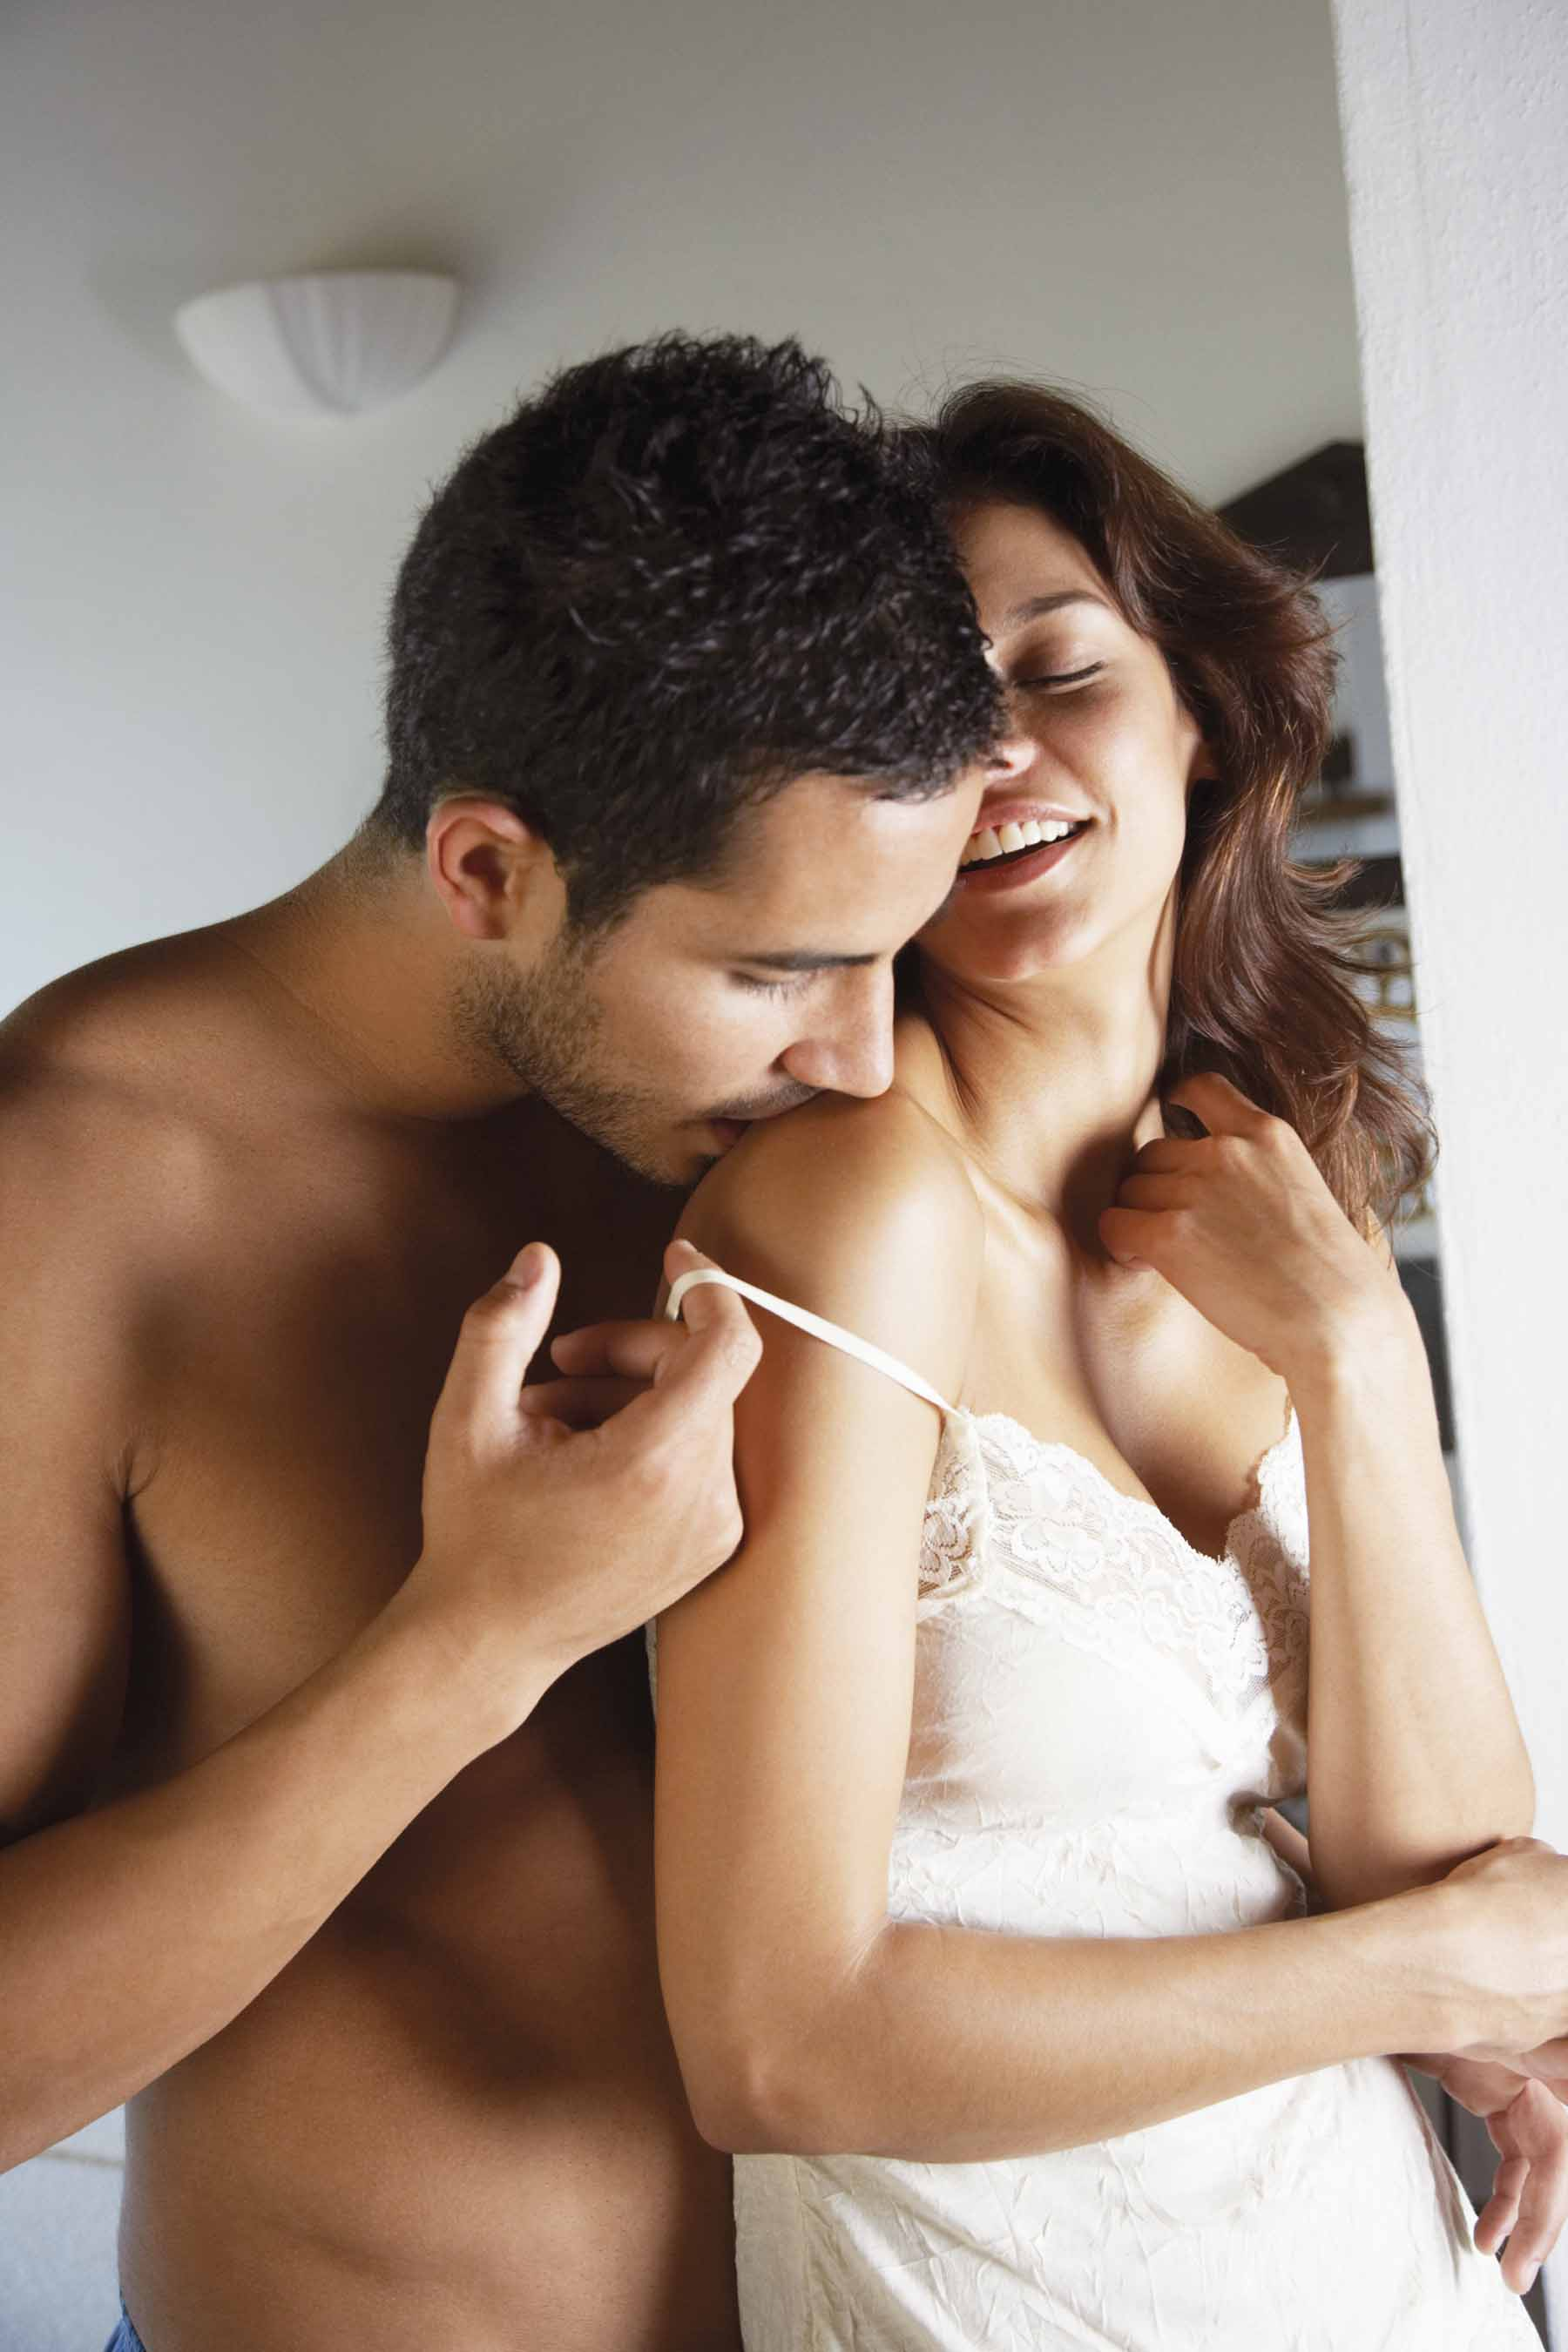 Foreplay Is Largely Referred To As A Range Of Erotic Physical Stimulation That Takes Place Prior To Real Sex Or Sexual Intercourse That In Men